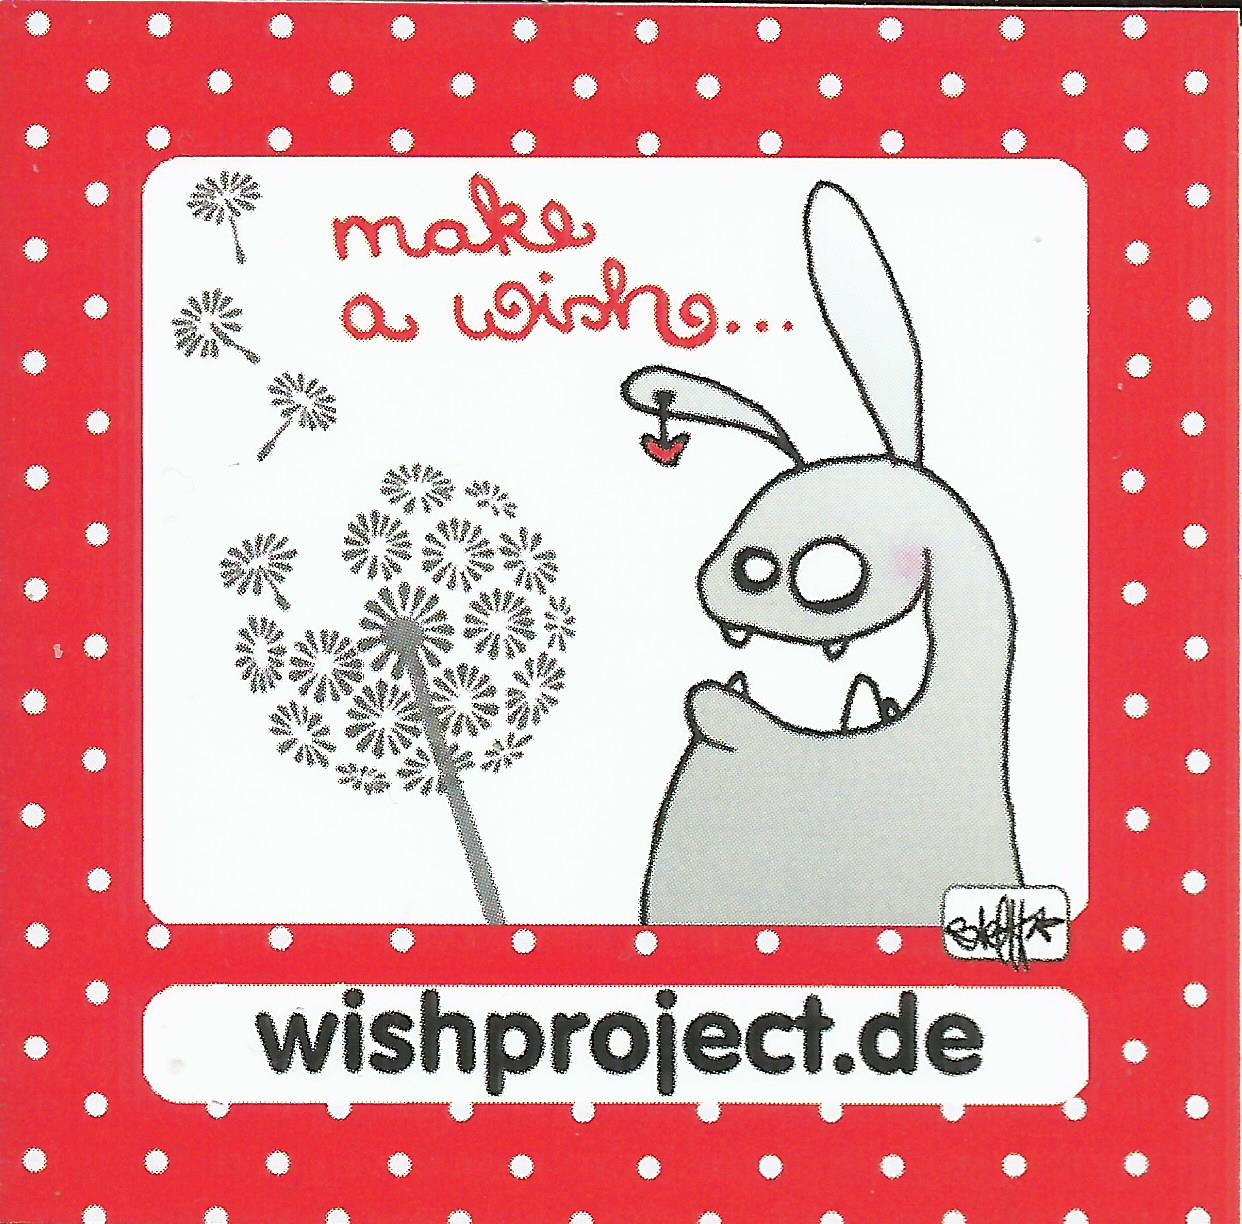 wishproject